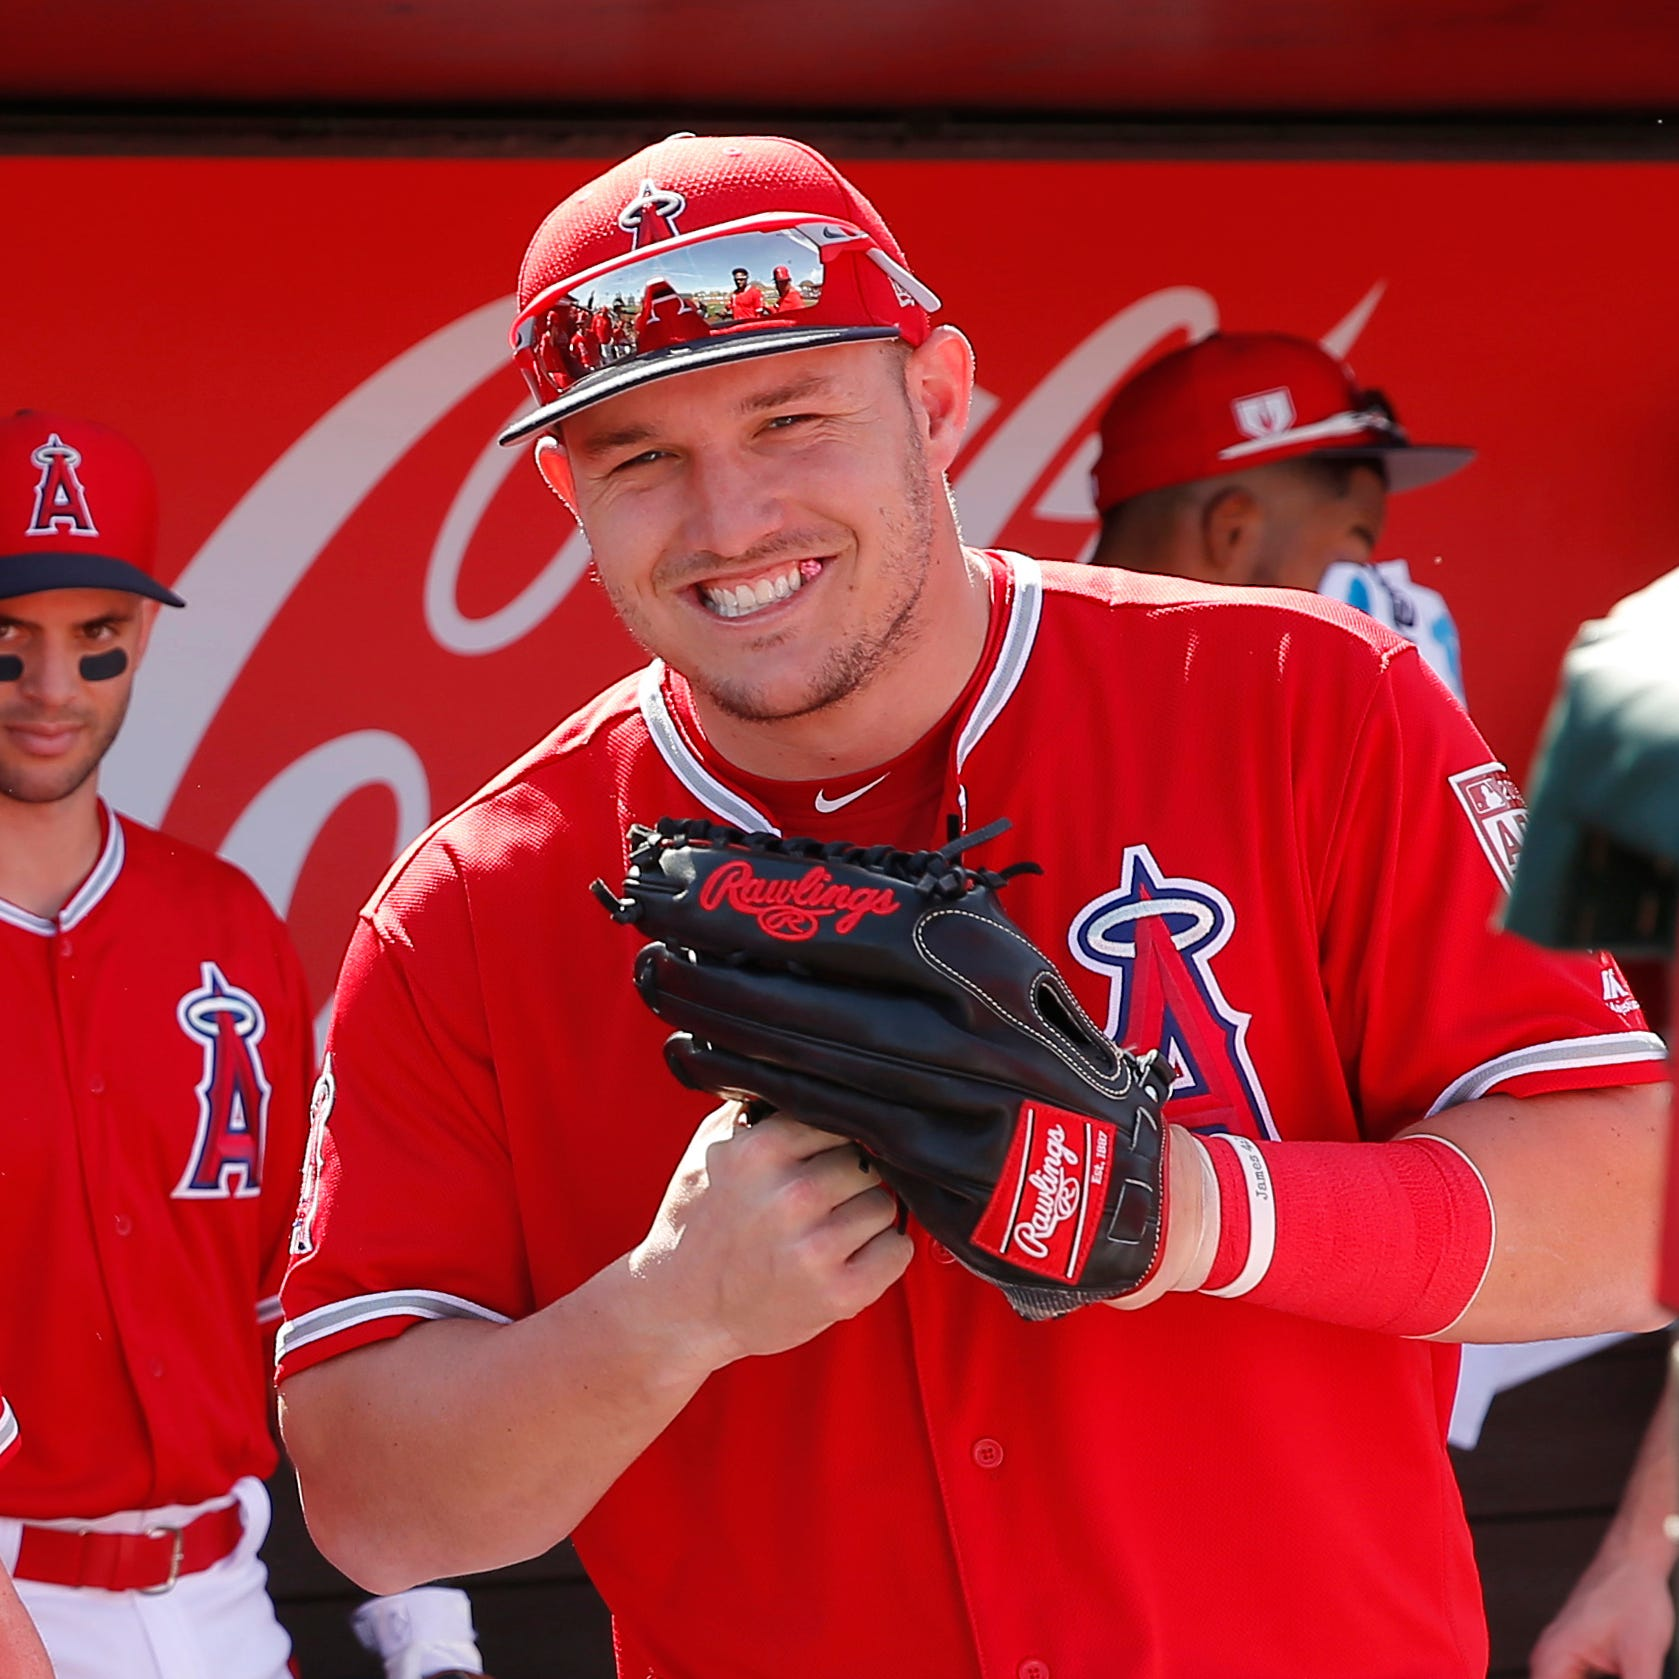 Mike Trout agrees to a record $430 million commitment over the next 12 years with the Angels